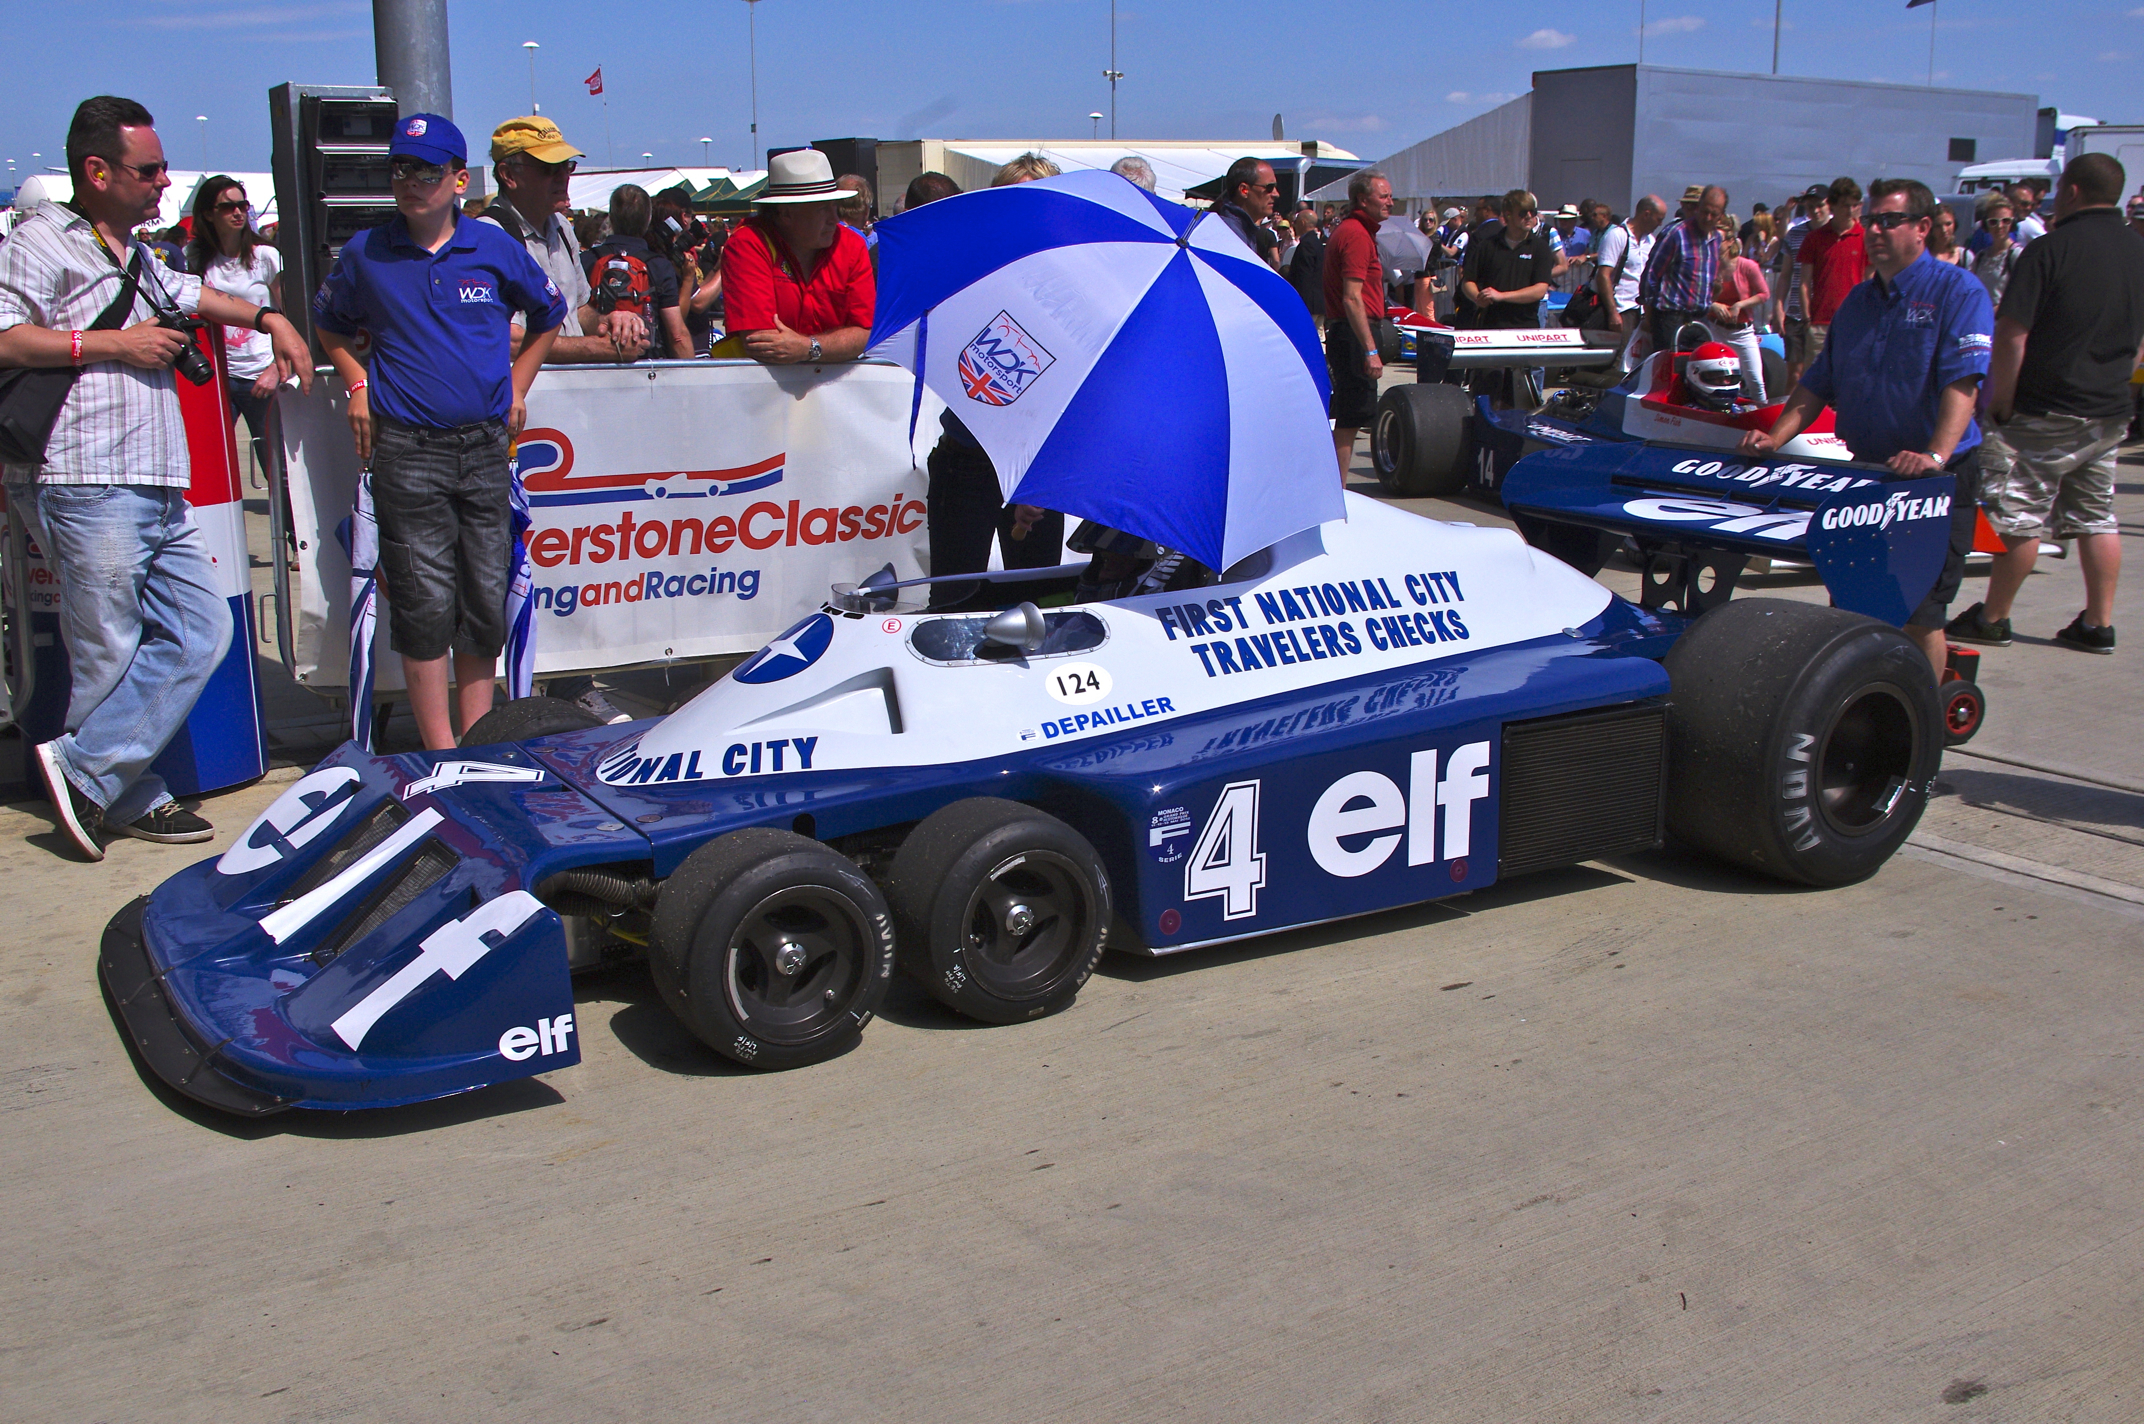 File:Tyrrell P34 at Silverstone Classic 2012 (1).jpg - Wikimedia Commons